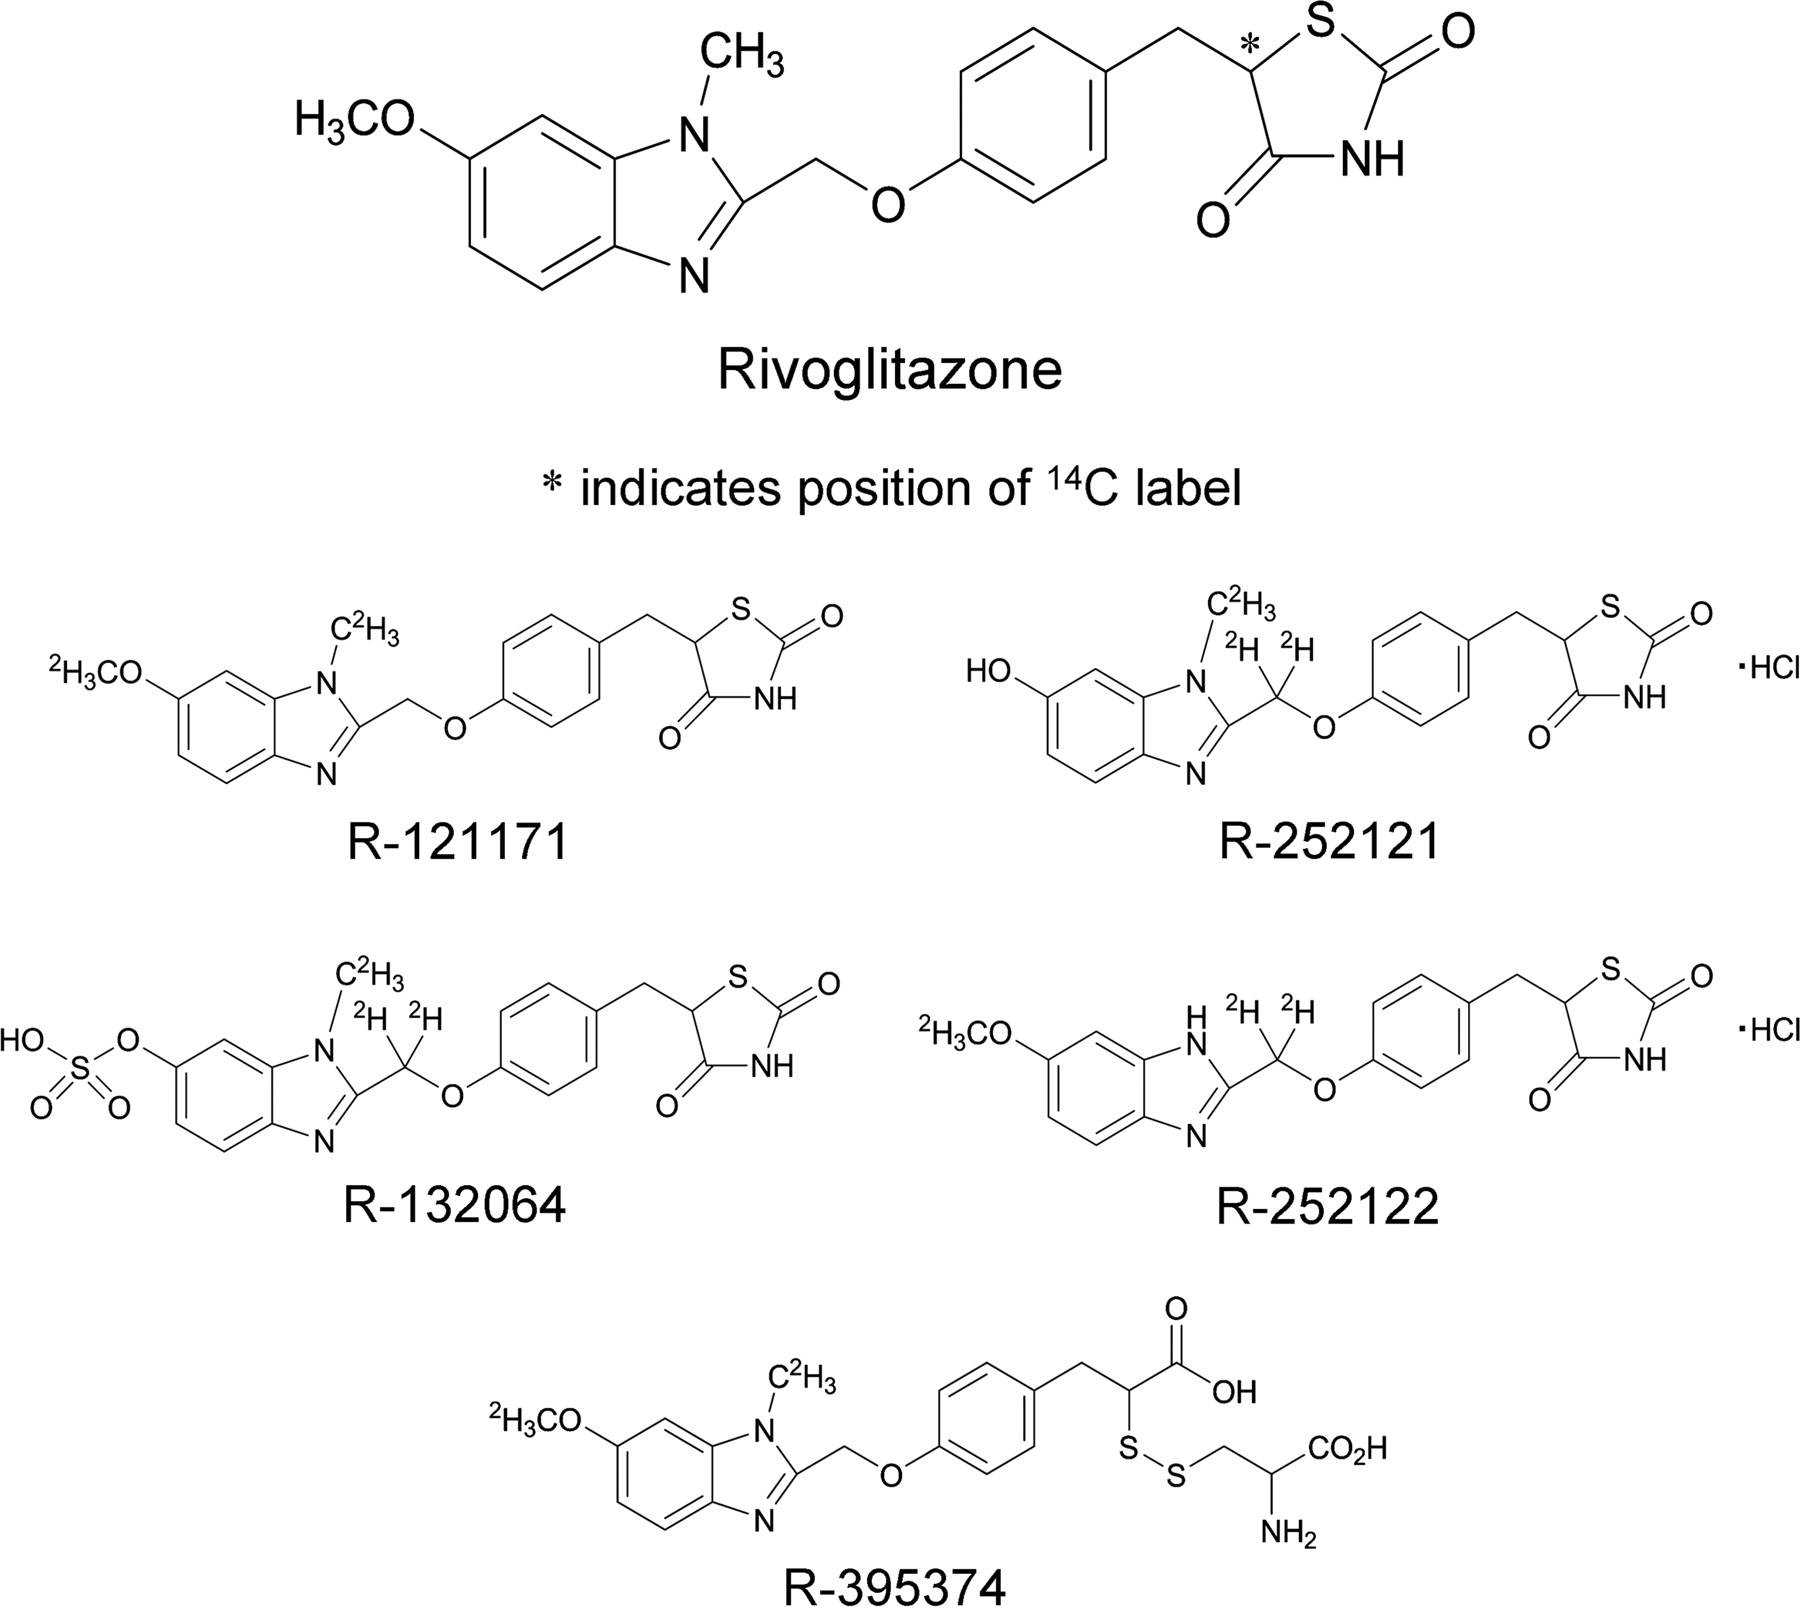 Pharmacokinetics, Metabolism, and Disposition of Rivoglitazone, a